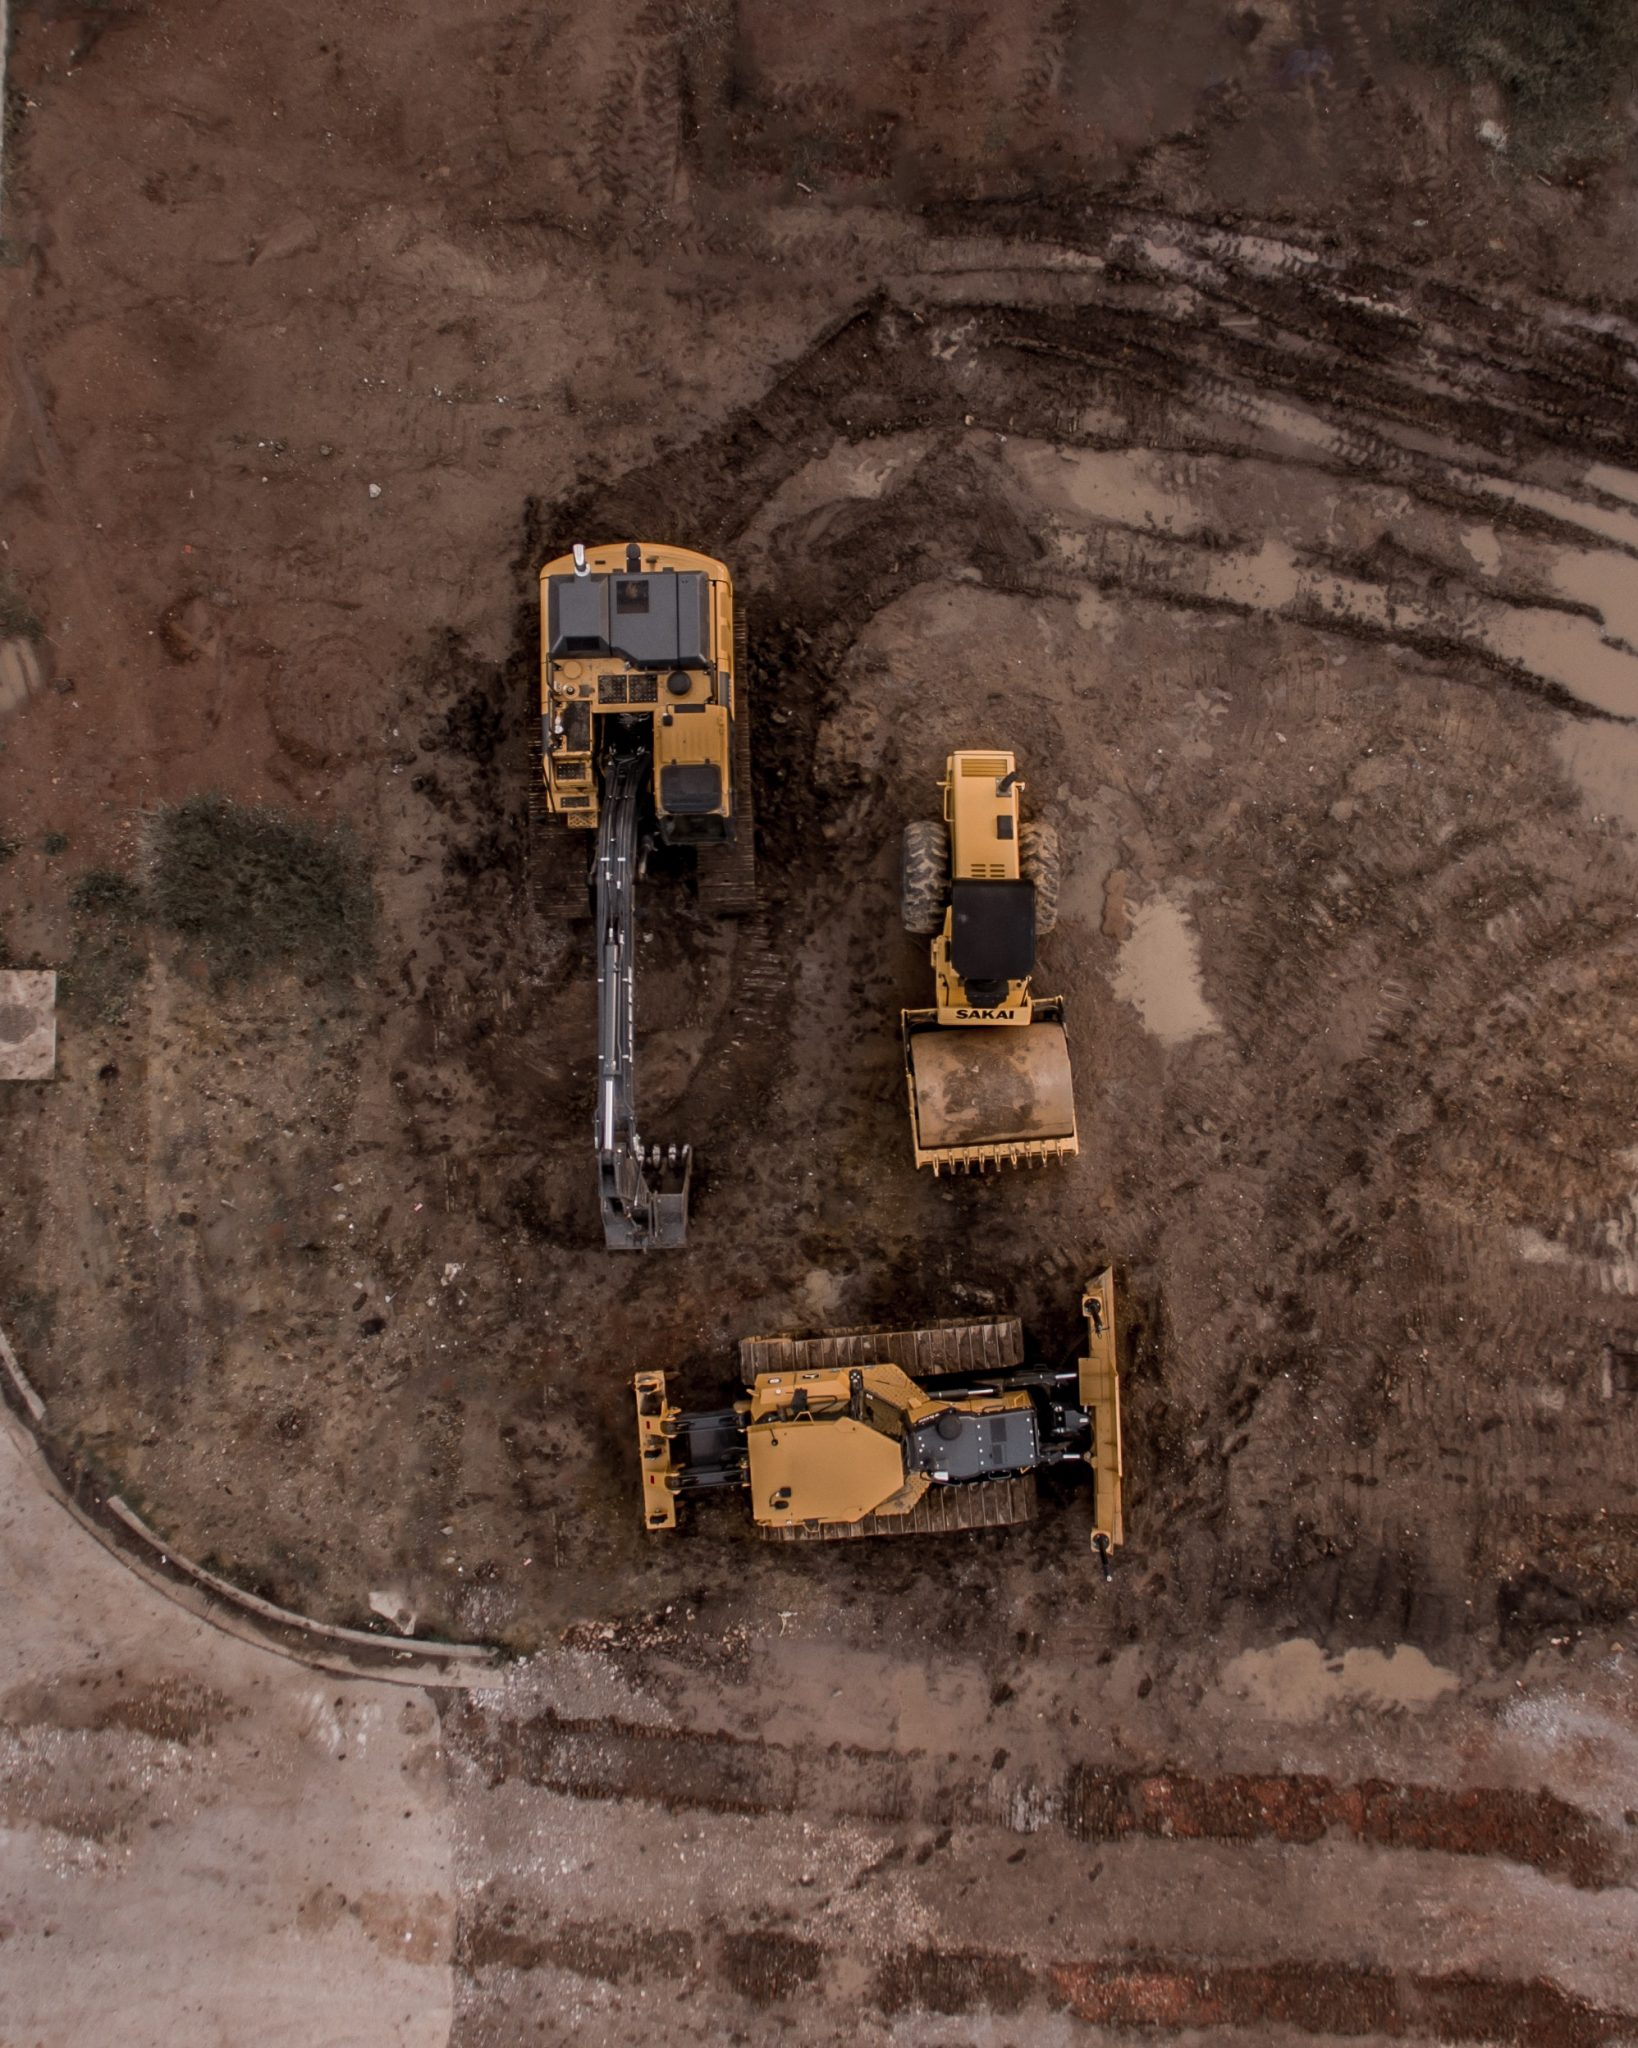 Aerial view of excavating on a construction site